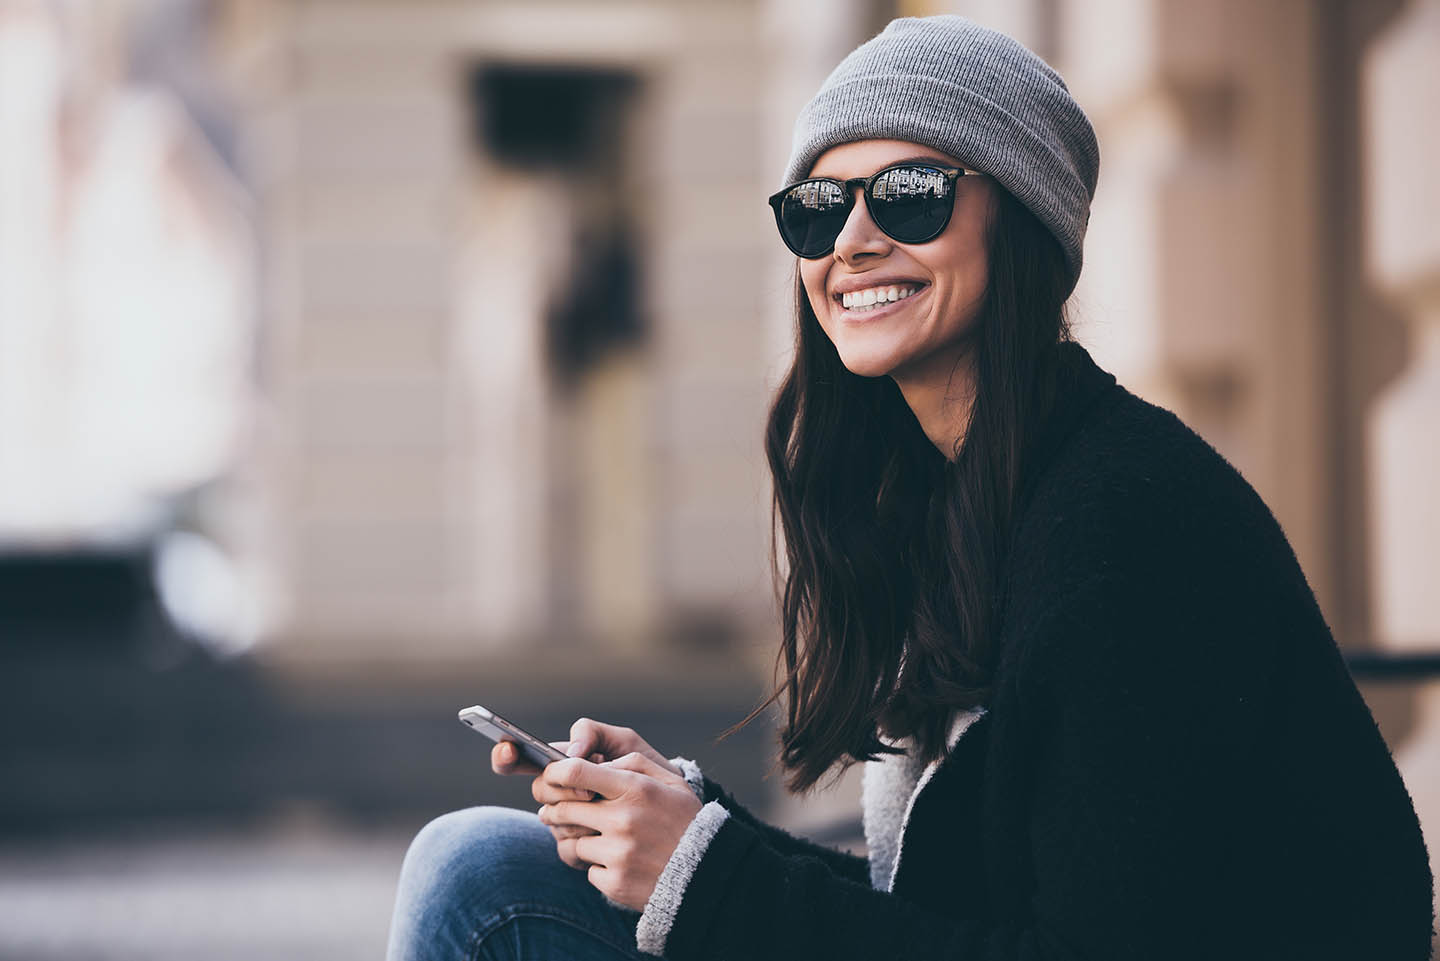 woman with beanie hat holding cellphone